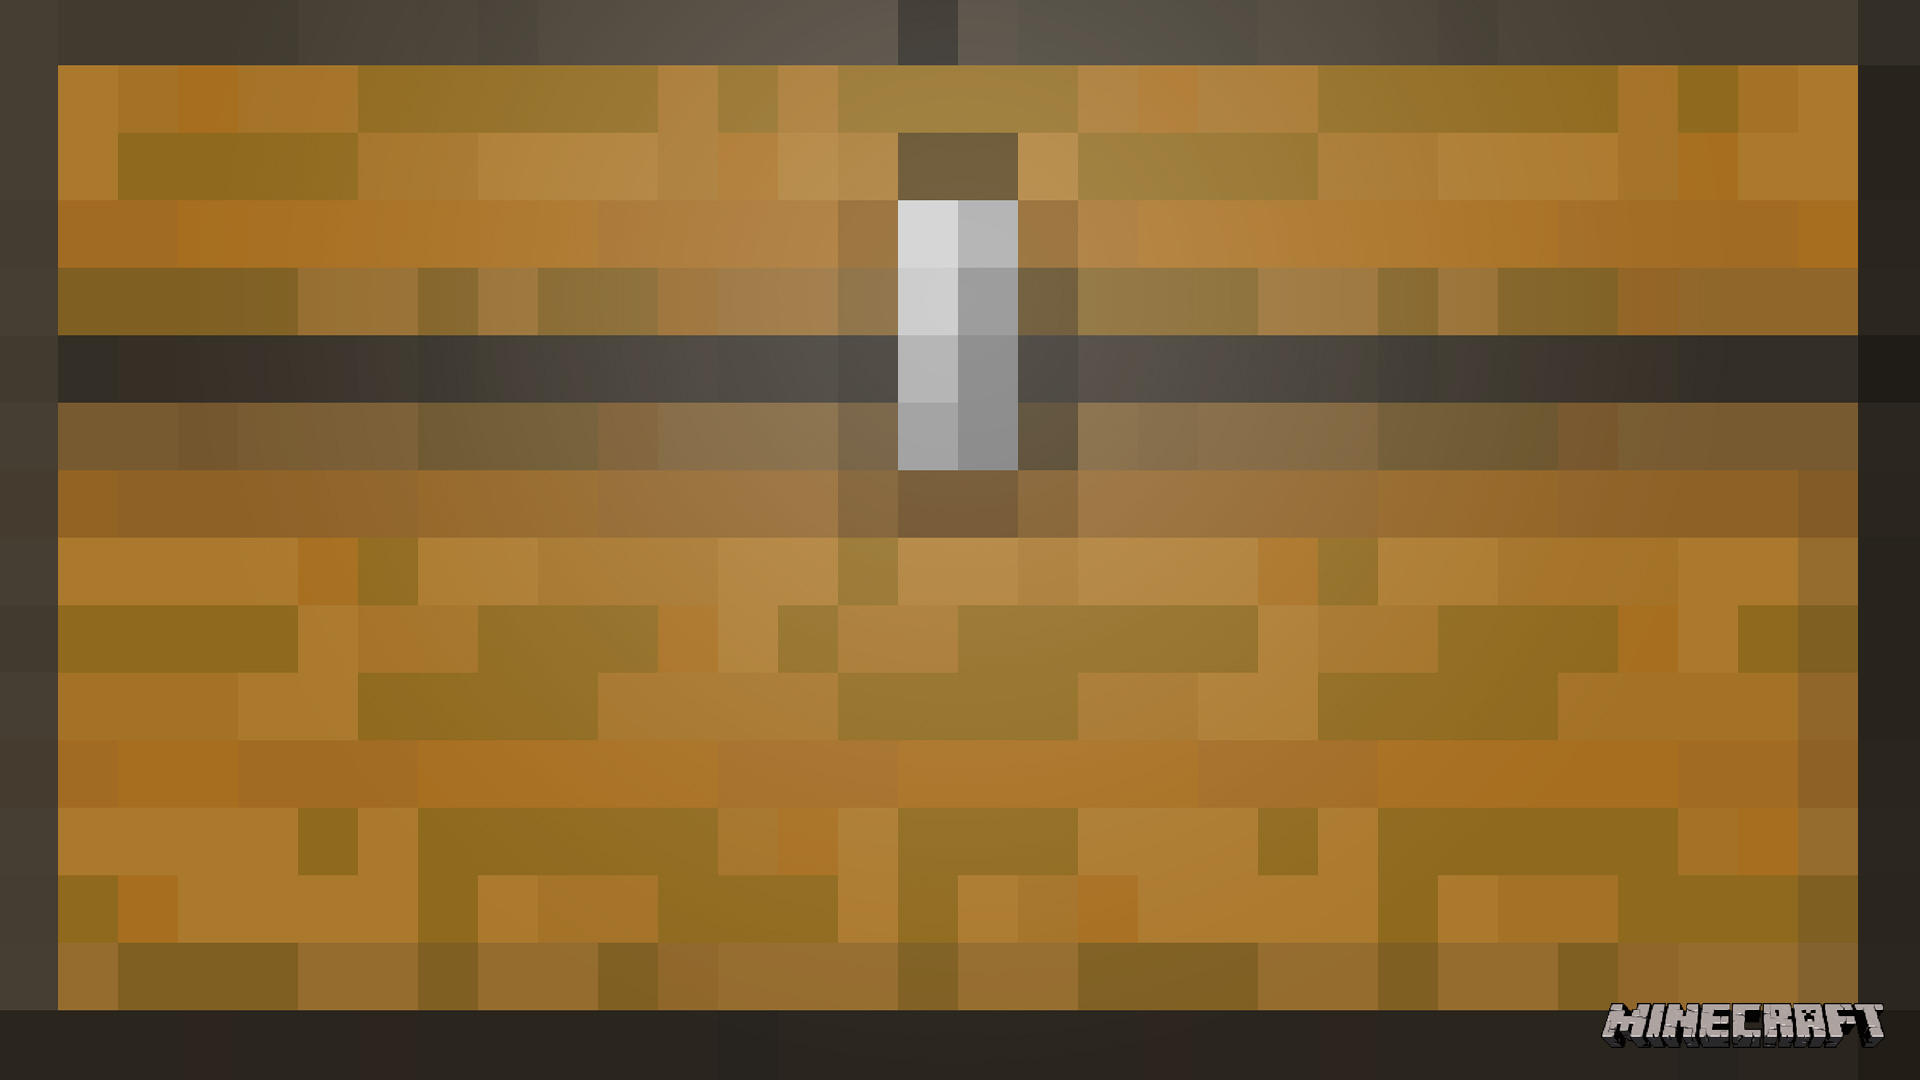 Login Page Template  minecraft chest wallpaper by